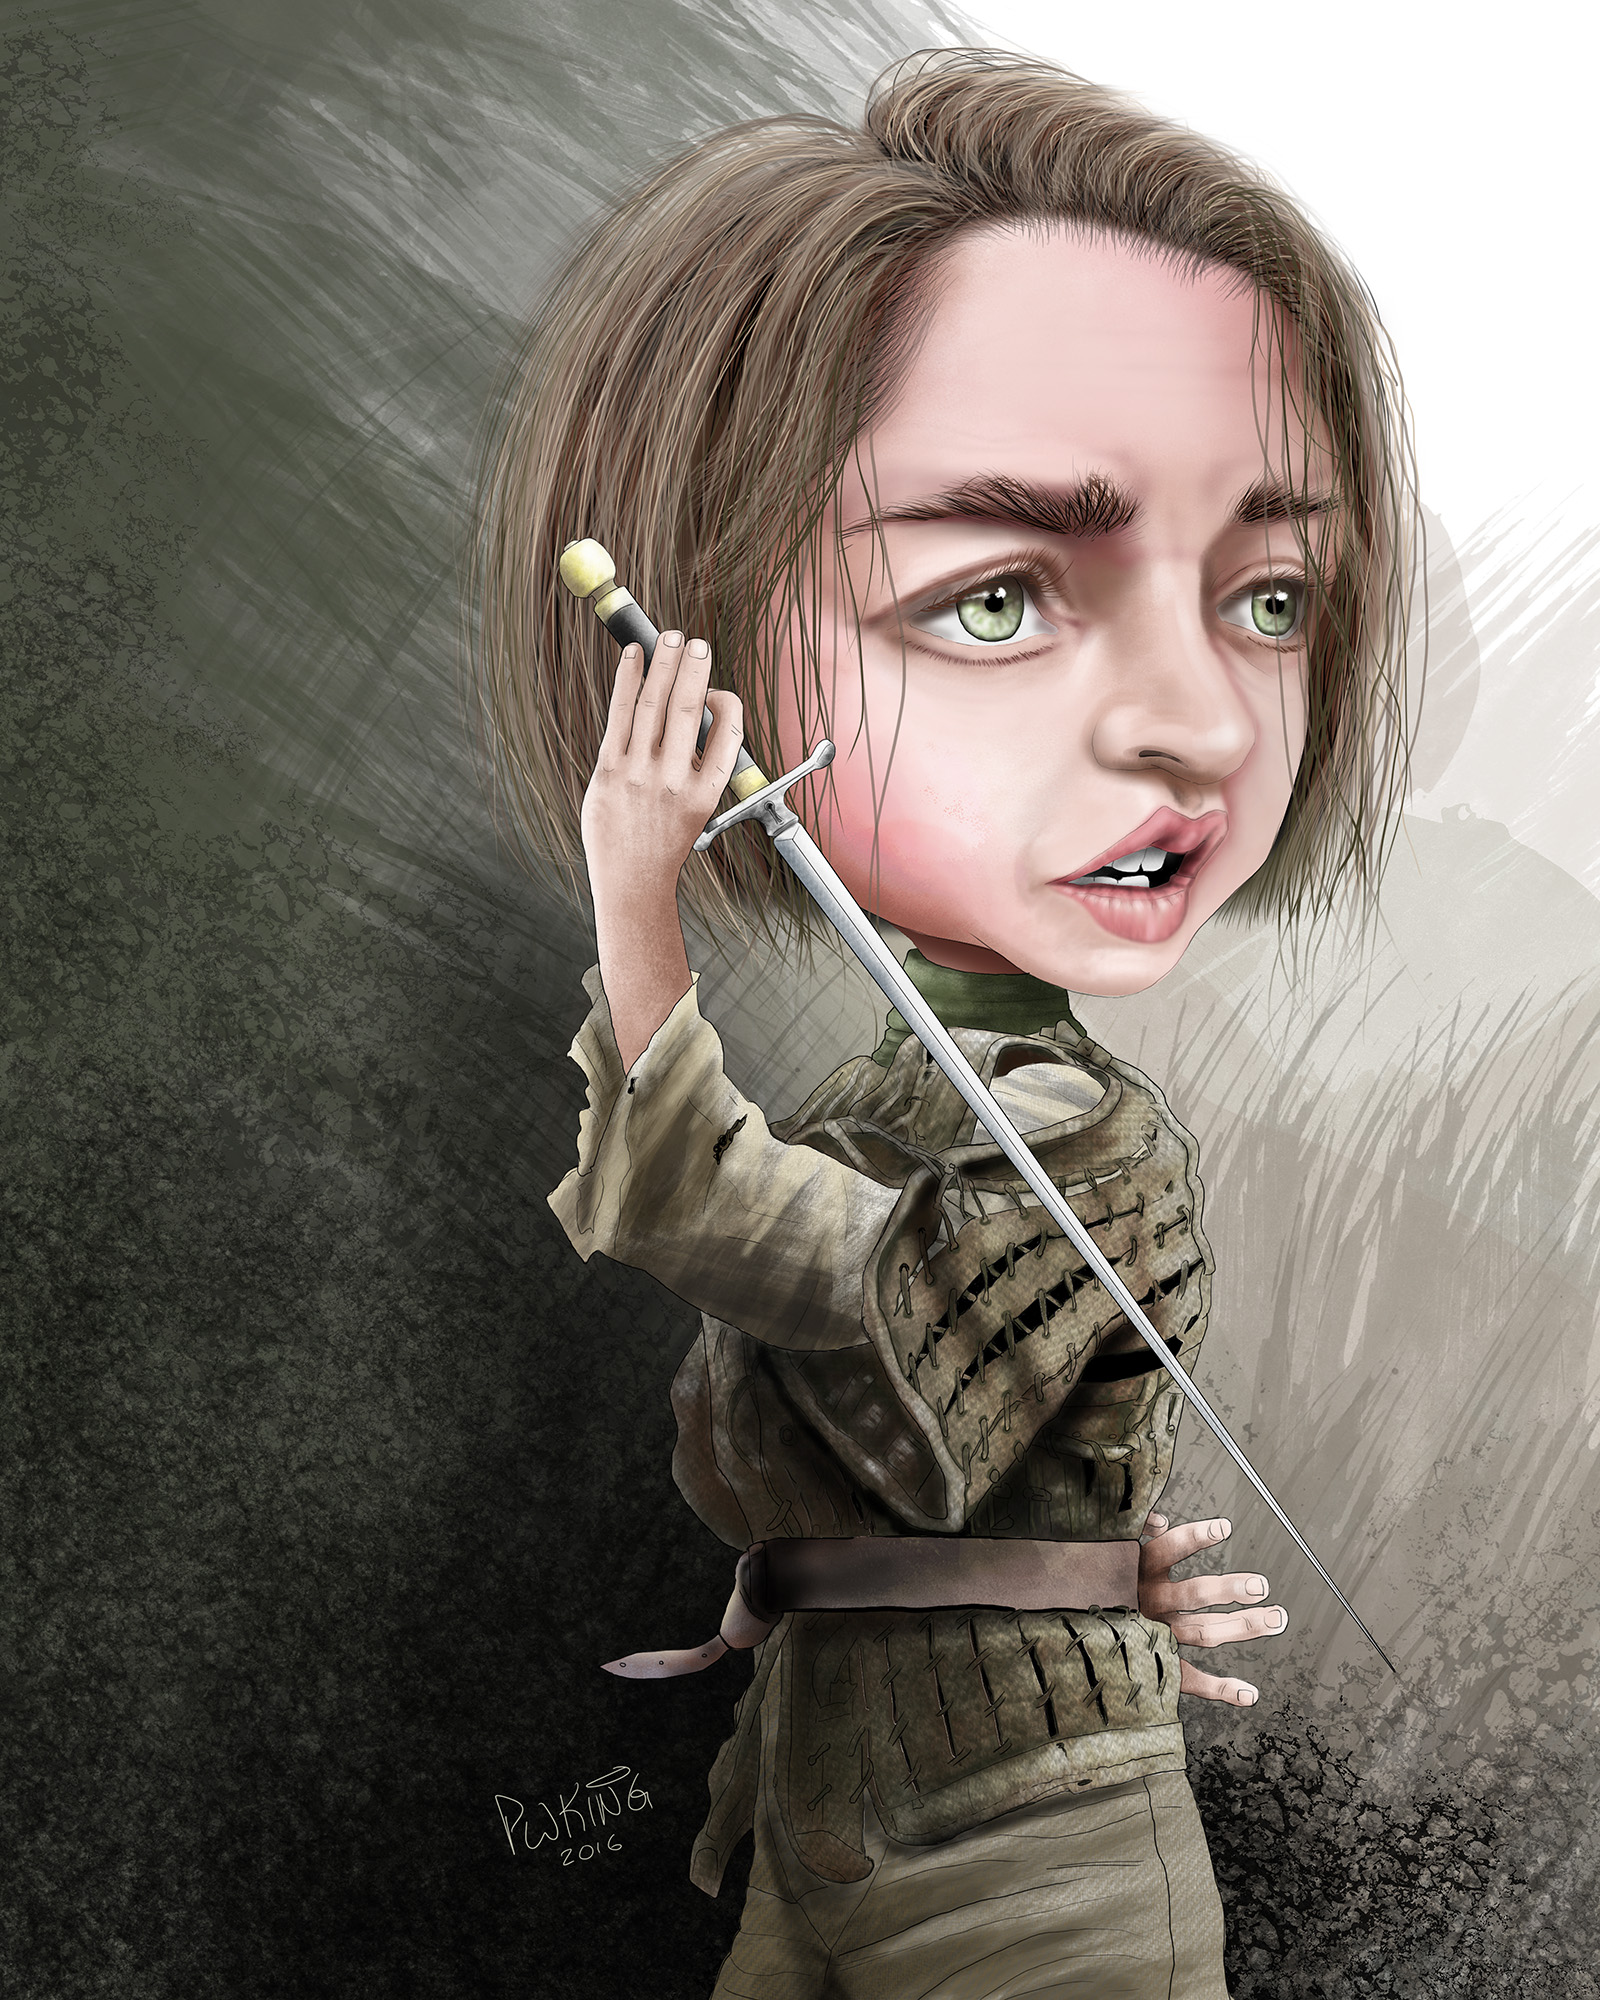 Arya Stark Caricature Paul King Artwerks